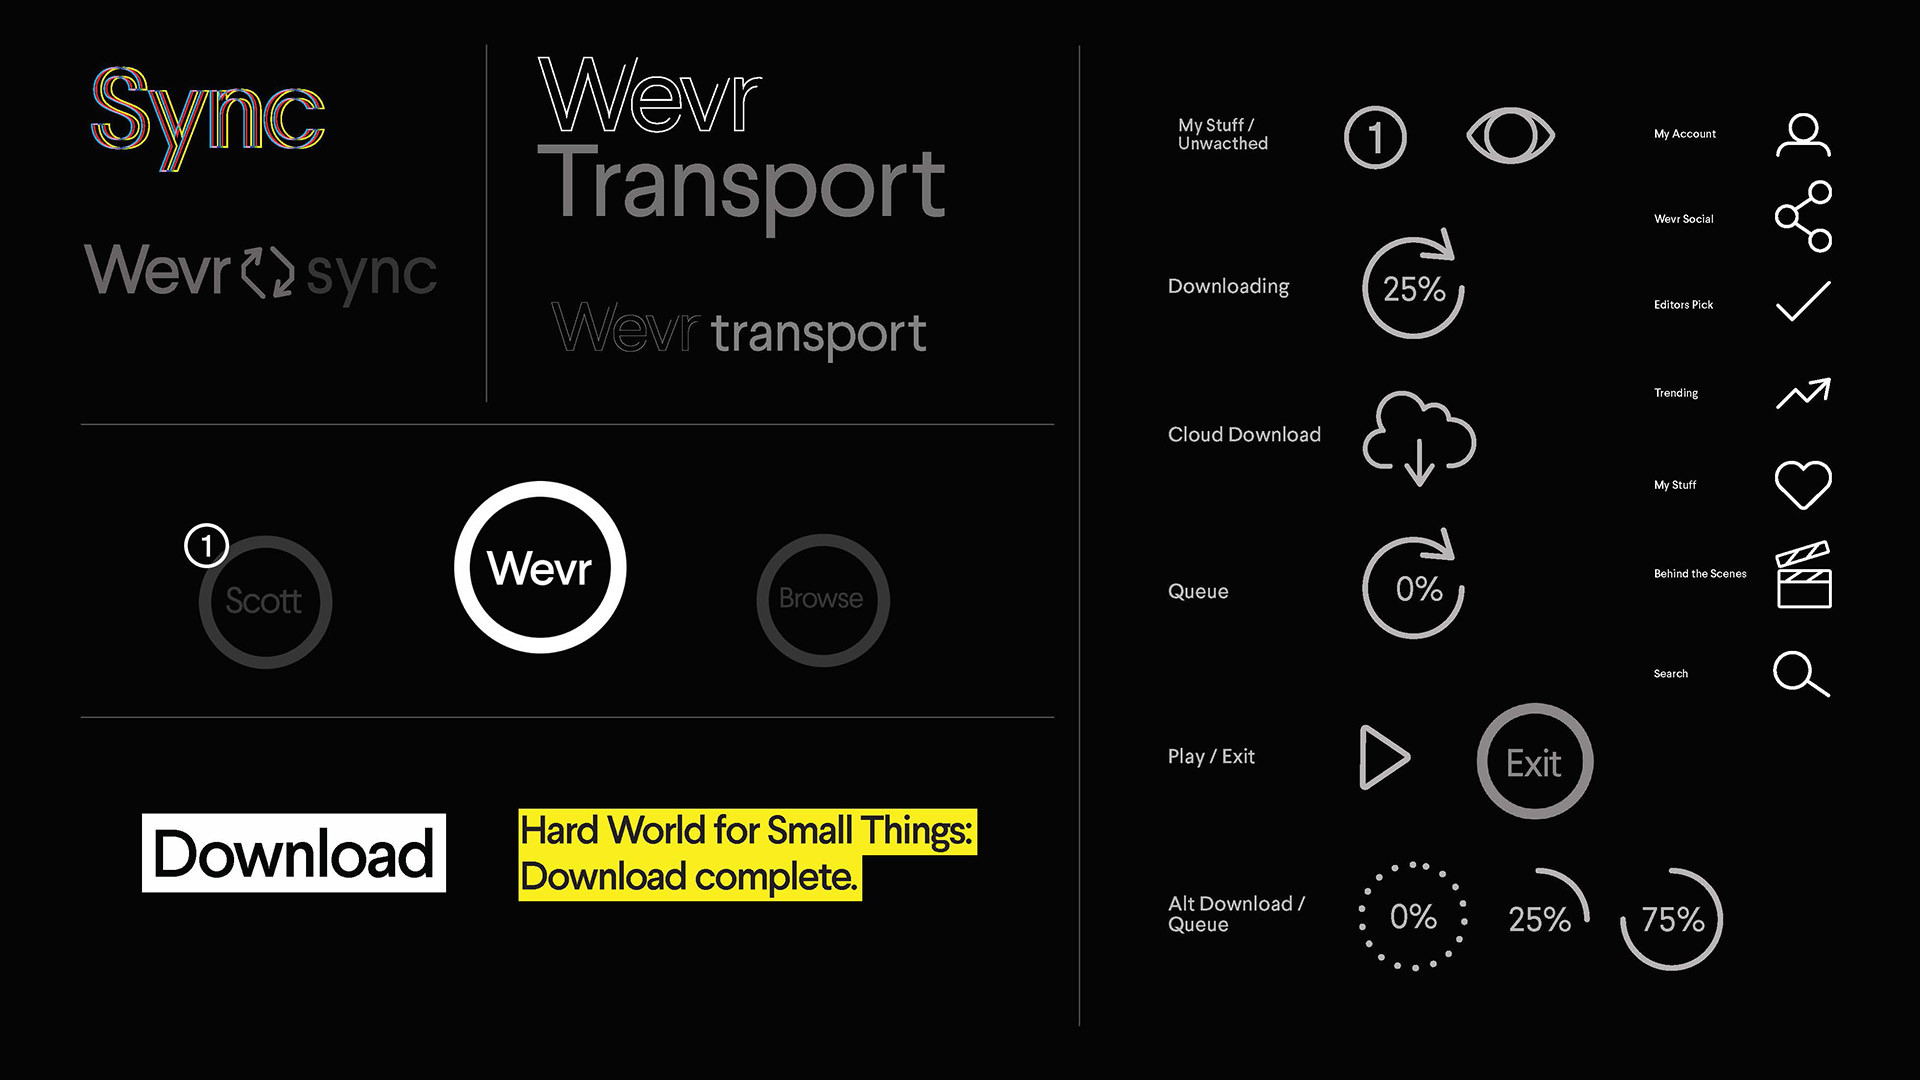 Jessica Lee WEVR TRANSPORT [VR UX/UI, Iconography]